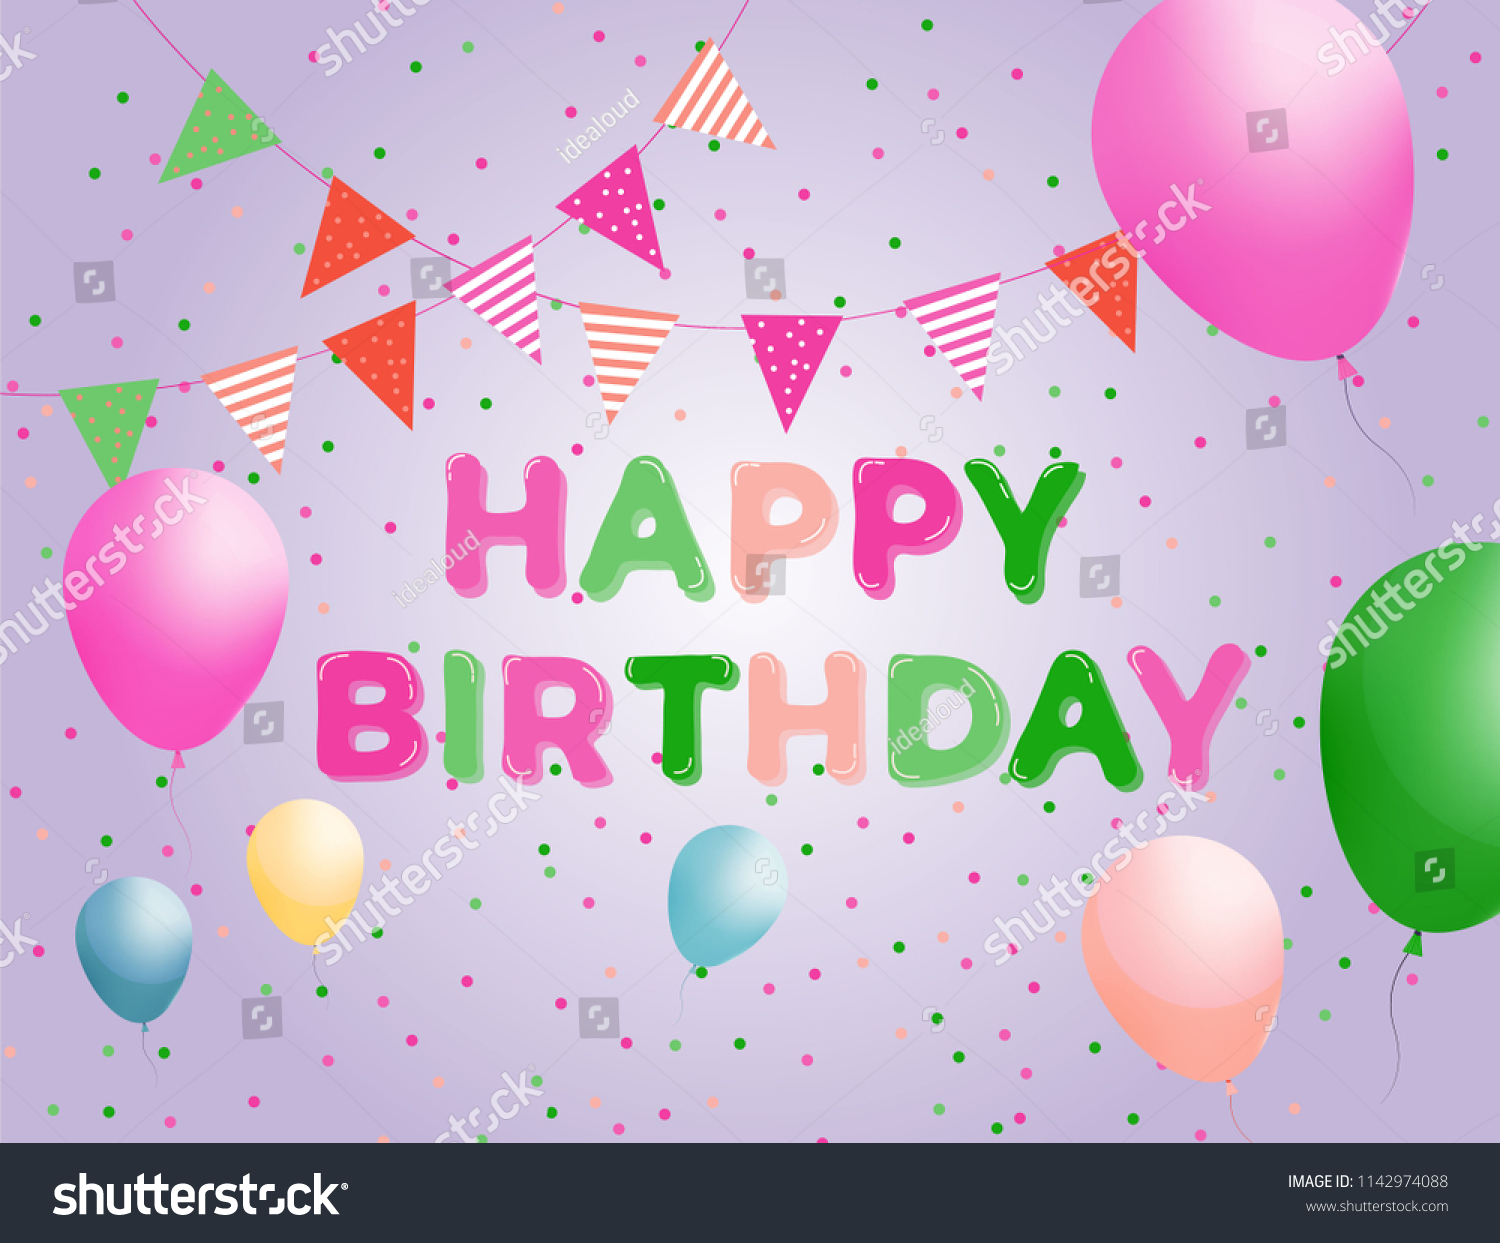 Birthday Poster Design Template from image.shutterstock.com